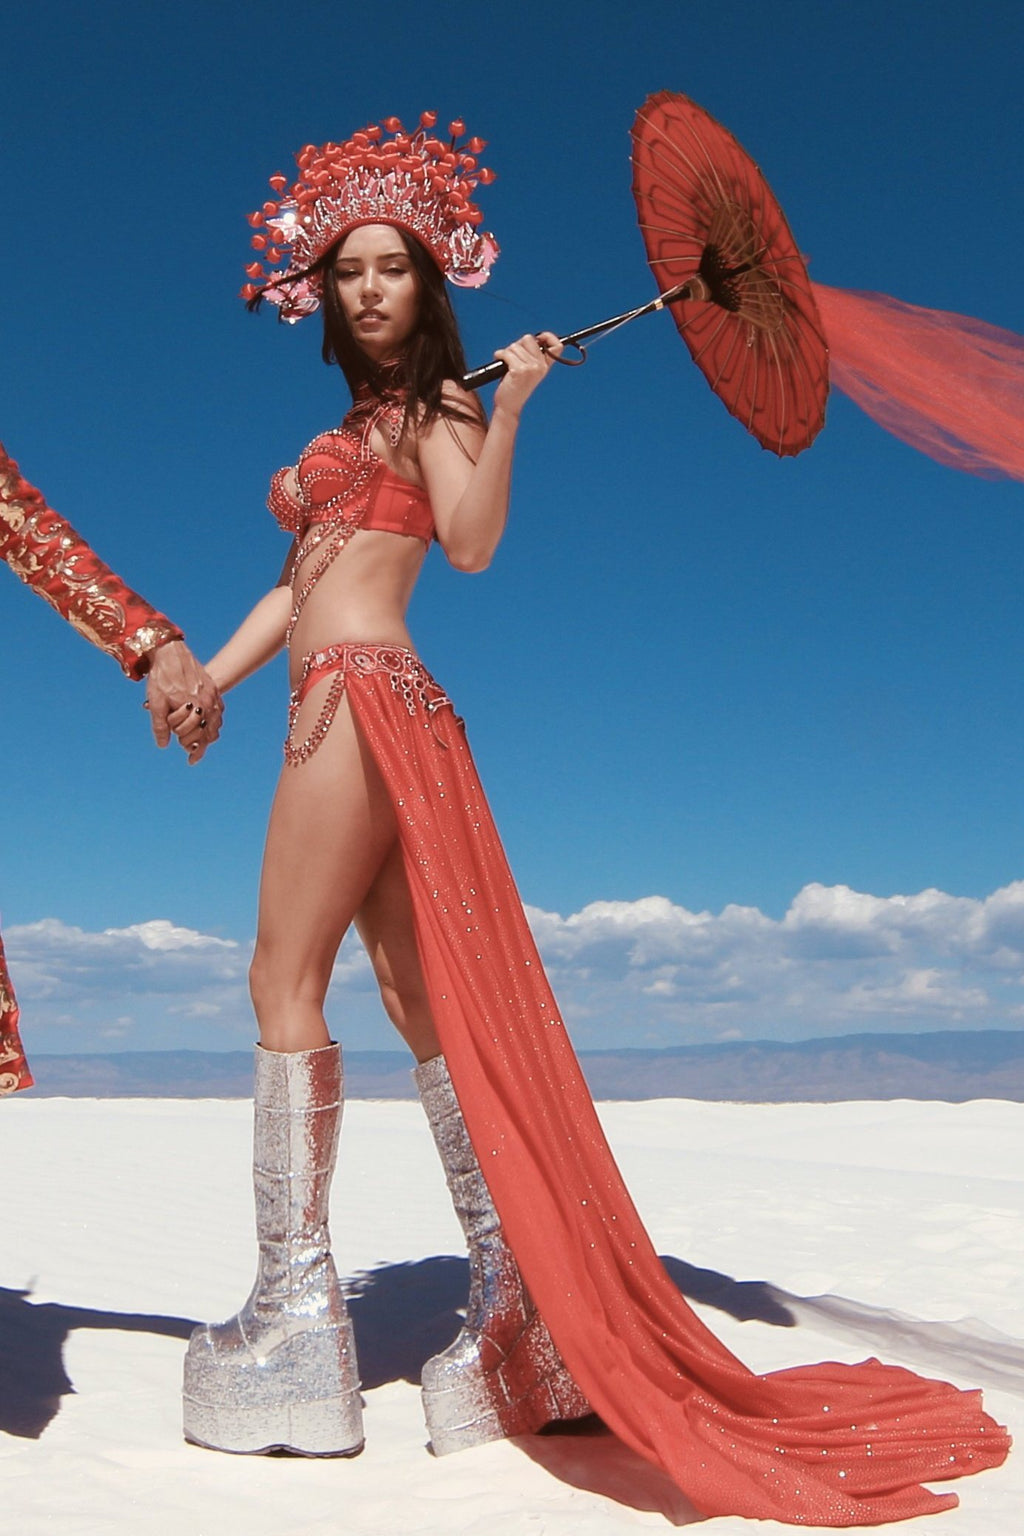 REDSHIFT FROM SINGULARITIES-Harmonia-burning man-burning man costumes-festival outfits-halloween costumes-Harmonia